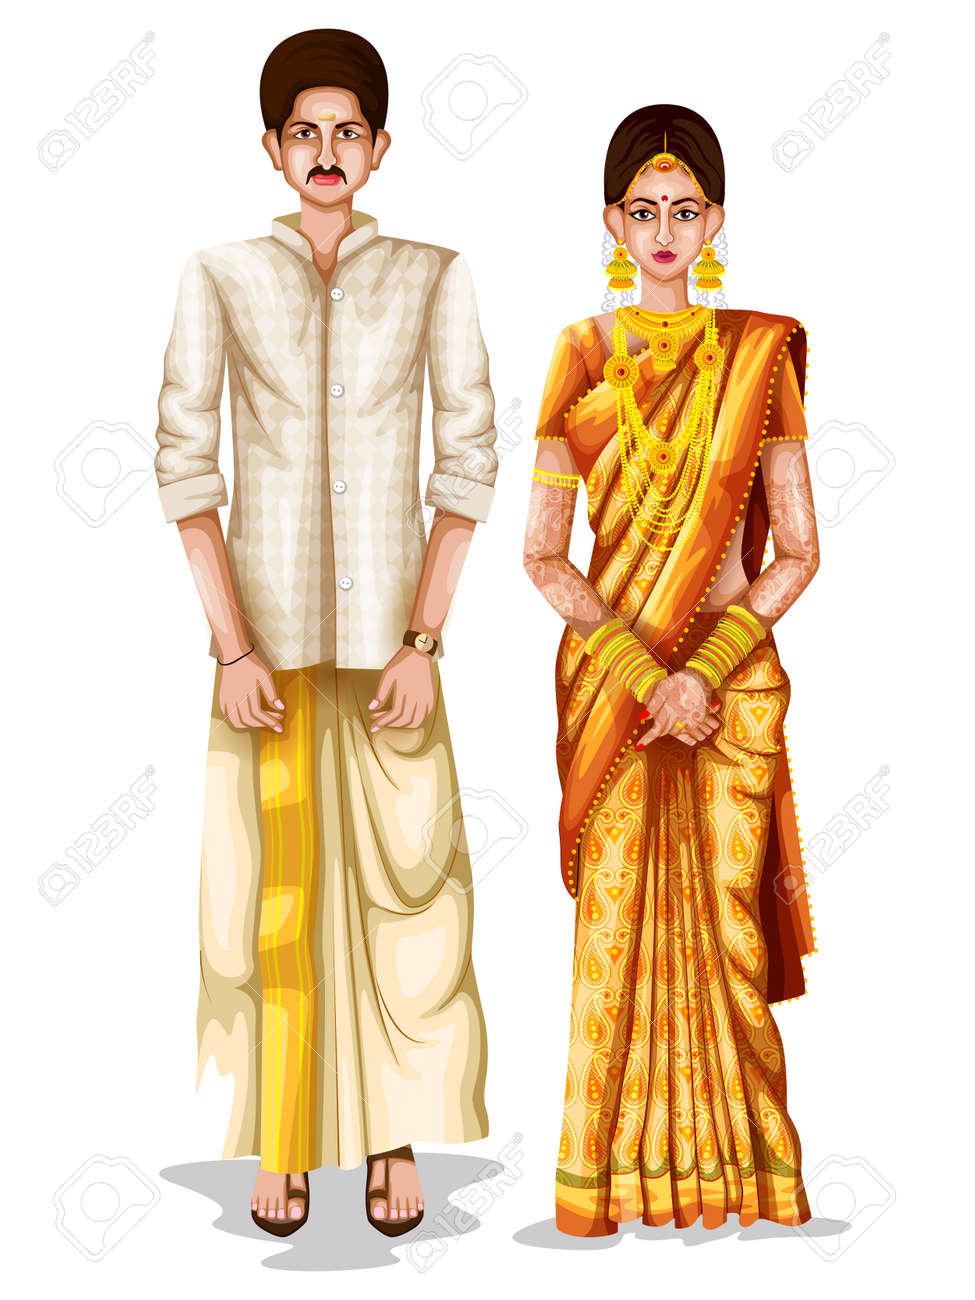 Easy To Edit Vector Illustration Of Keralite Wedding Couple In Traditional Costume Kerala India